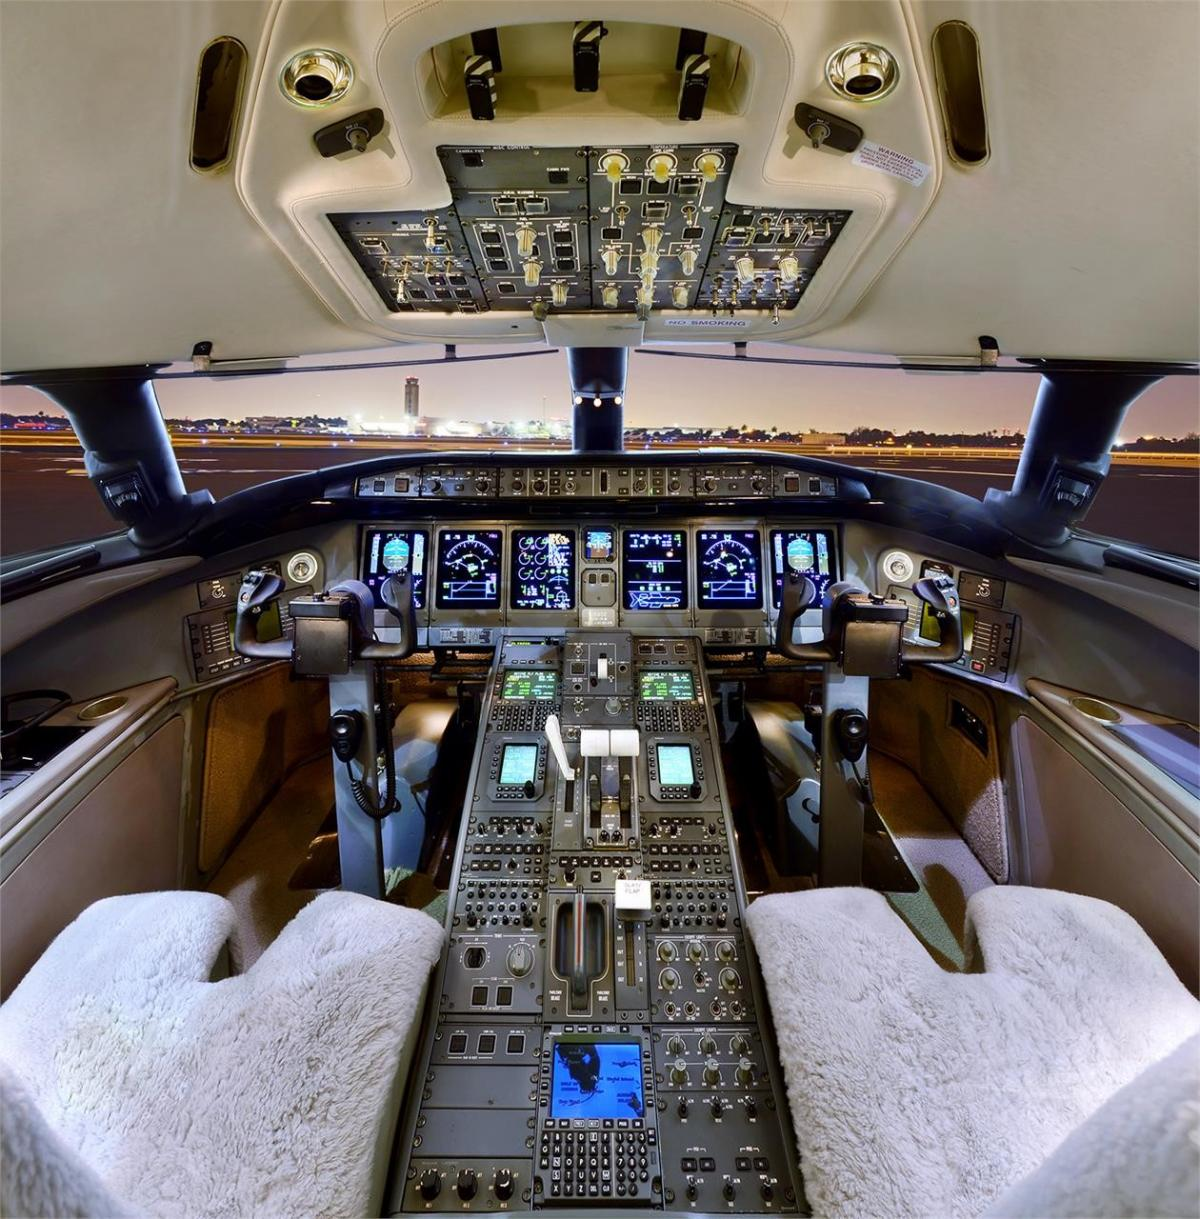 2002 BOMBARDIER GLOBAL EXPRESS Photo 3